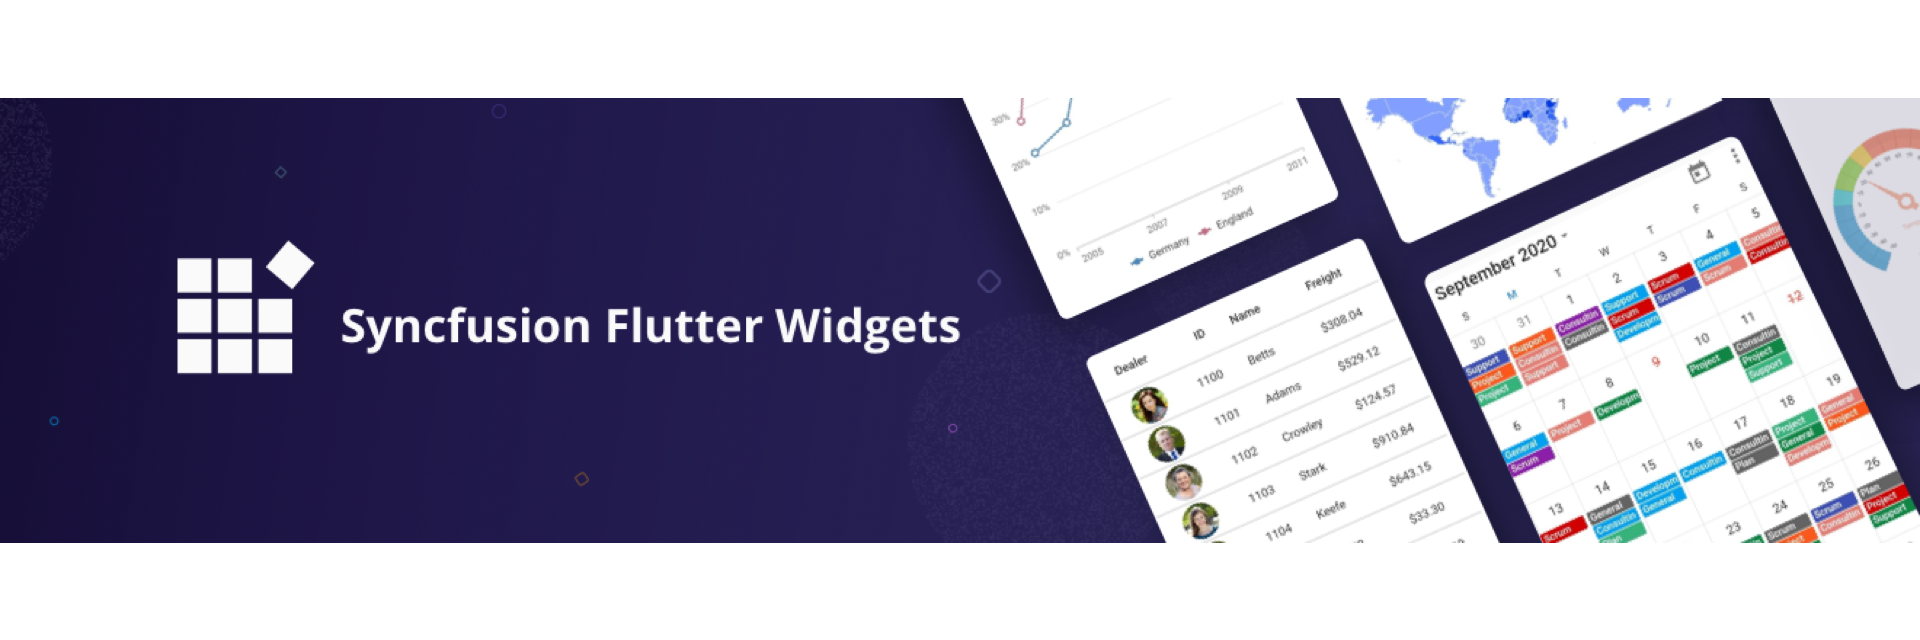 Syncfusion Flutter Gallery banner